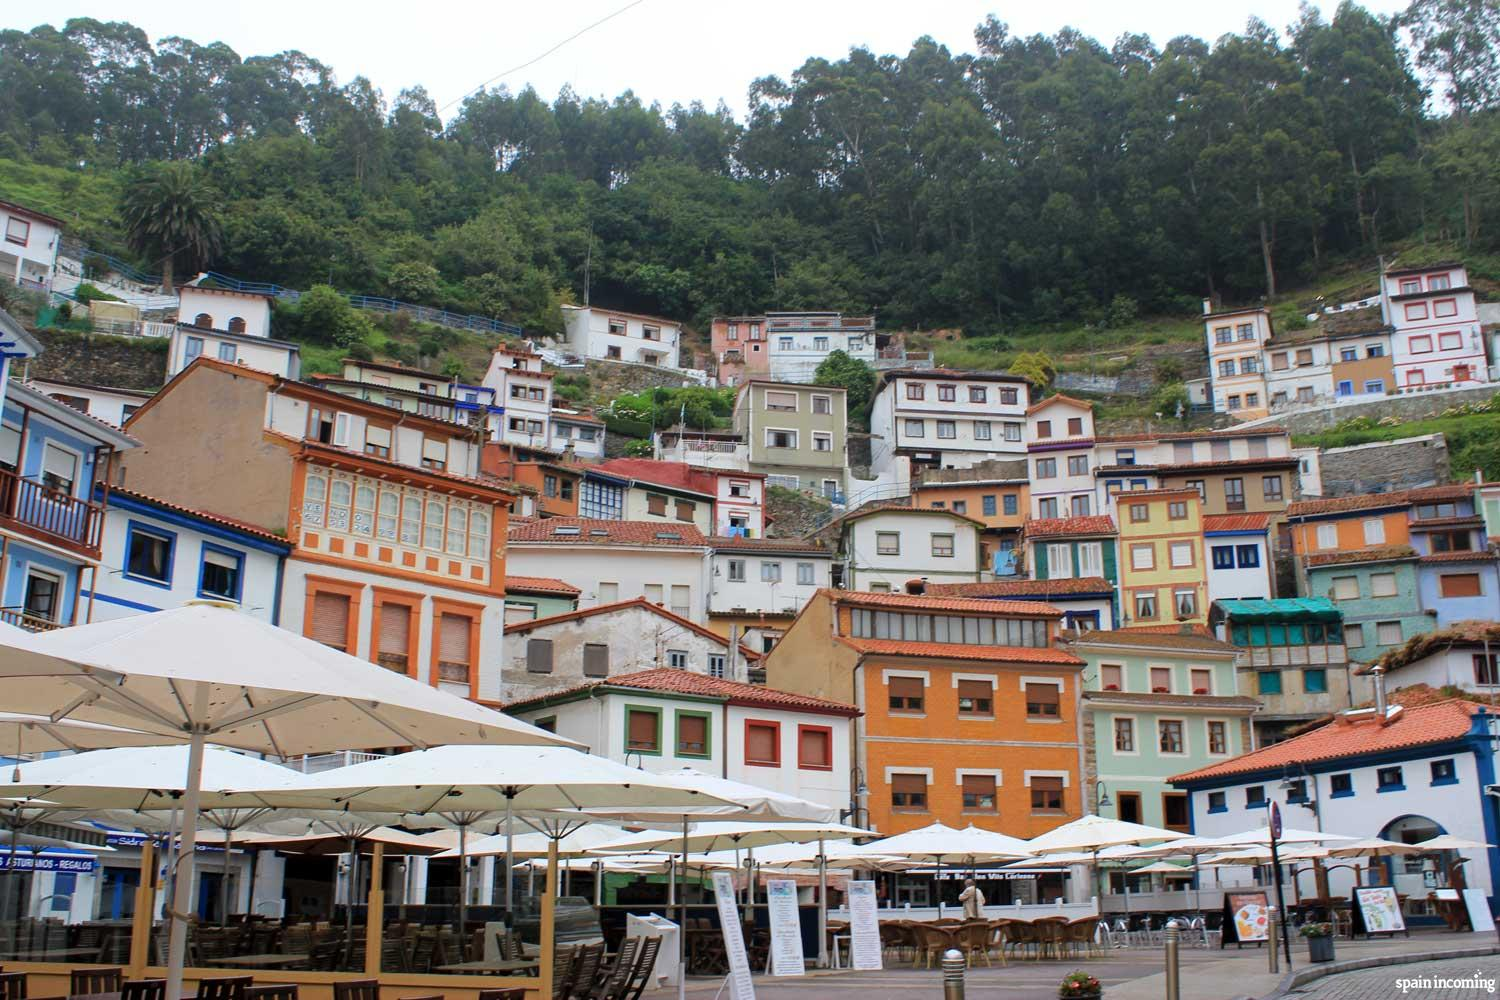 Fishing Villages of Northern Spain - Cudillero